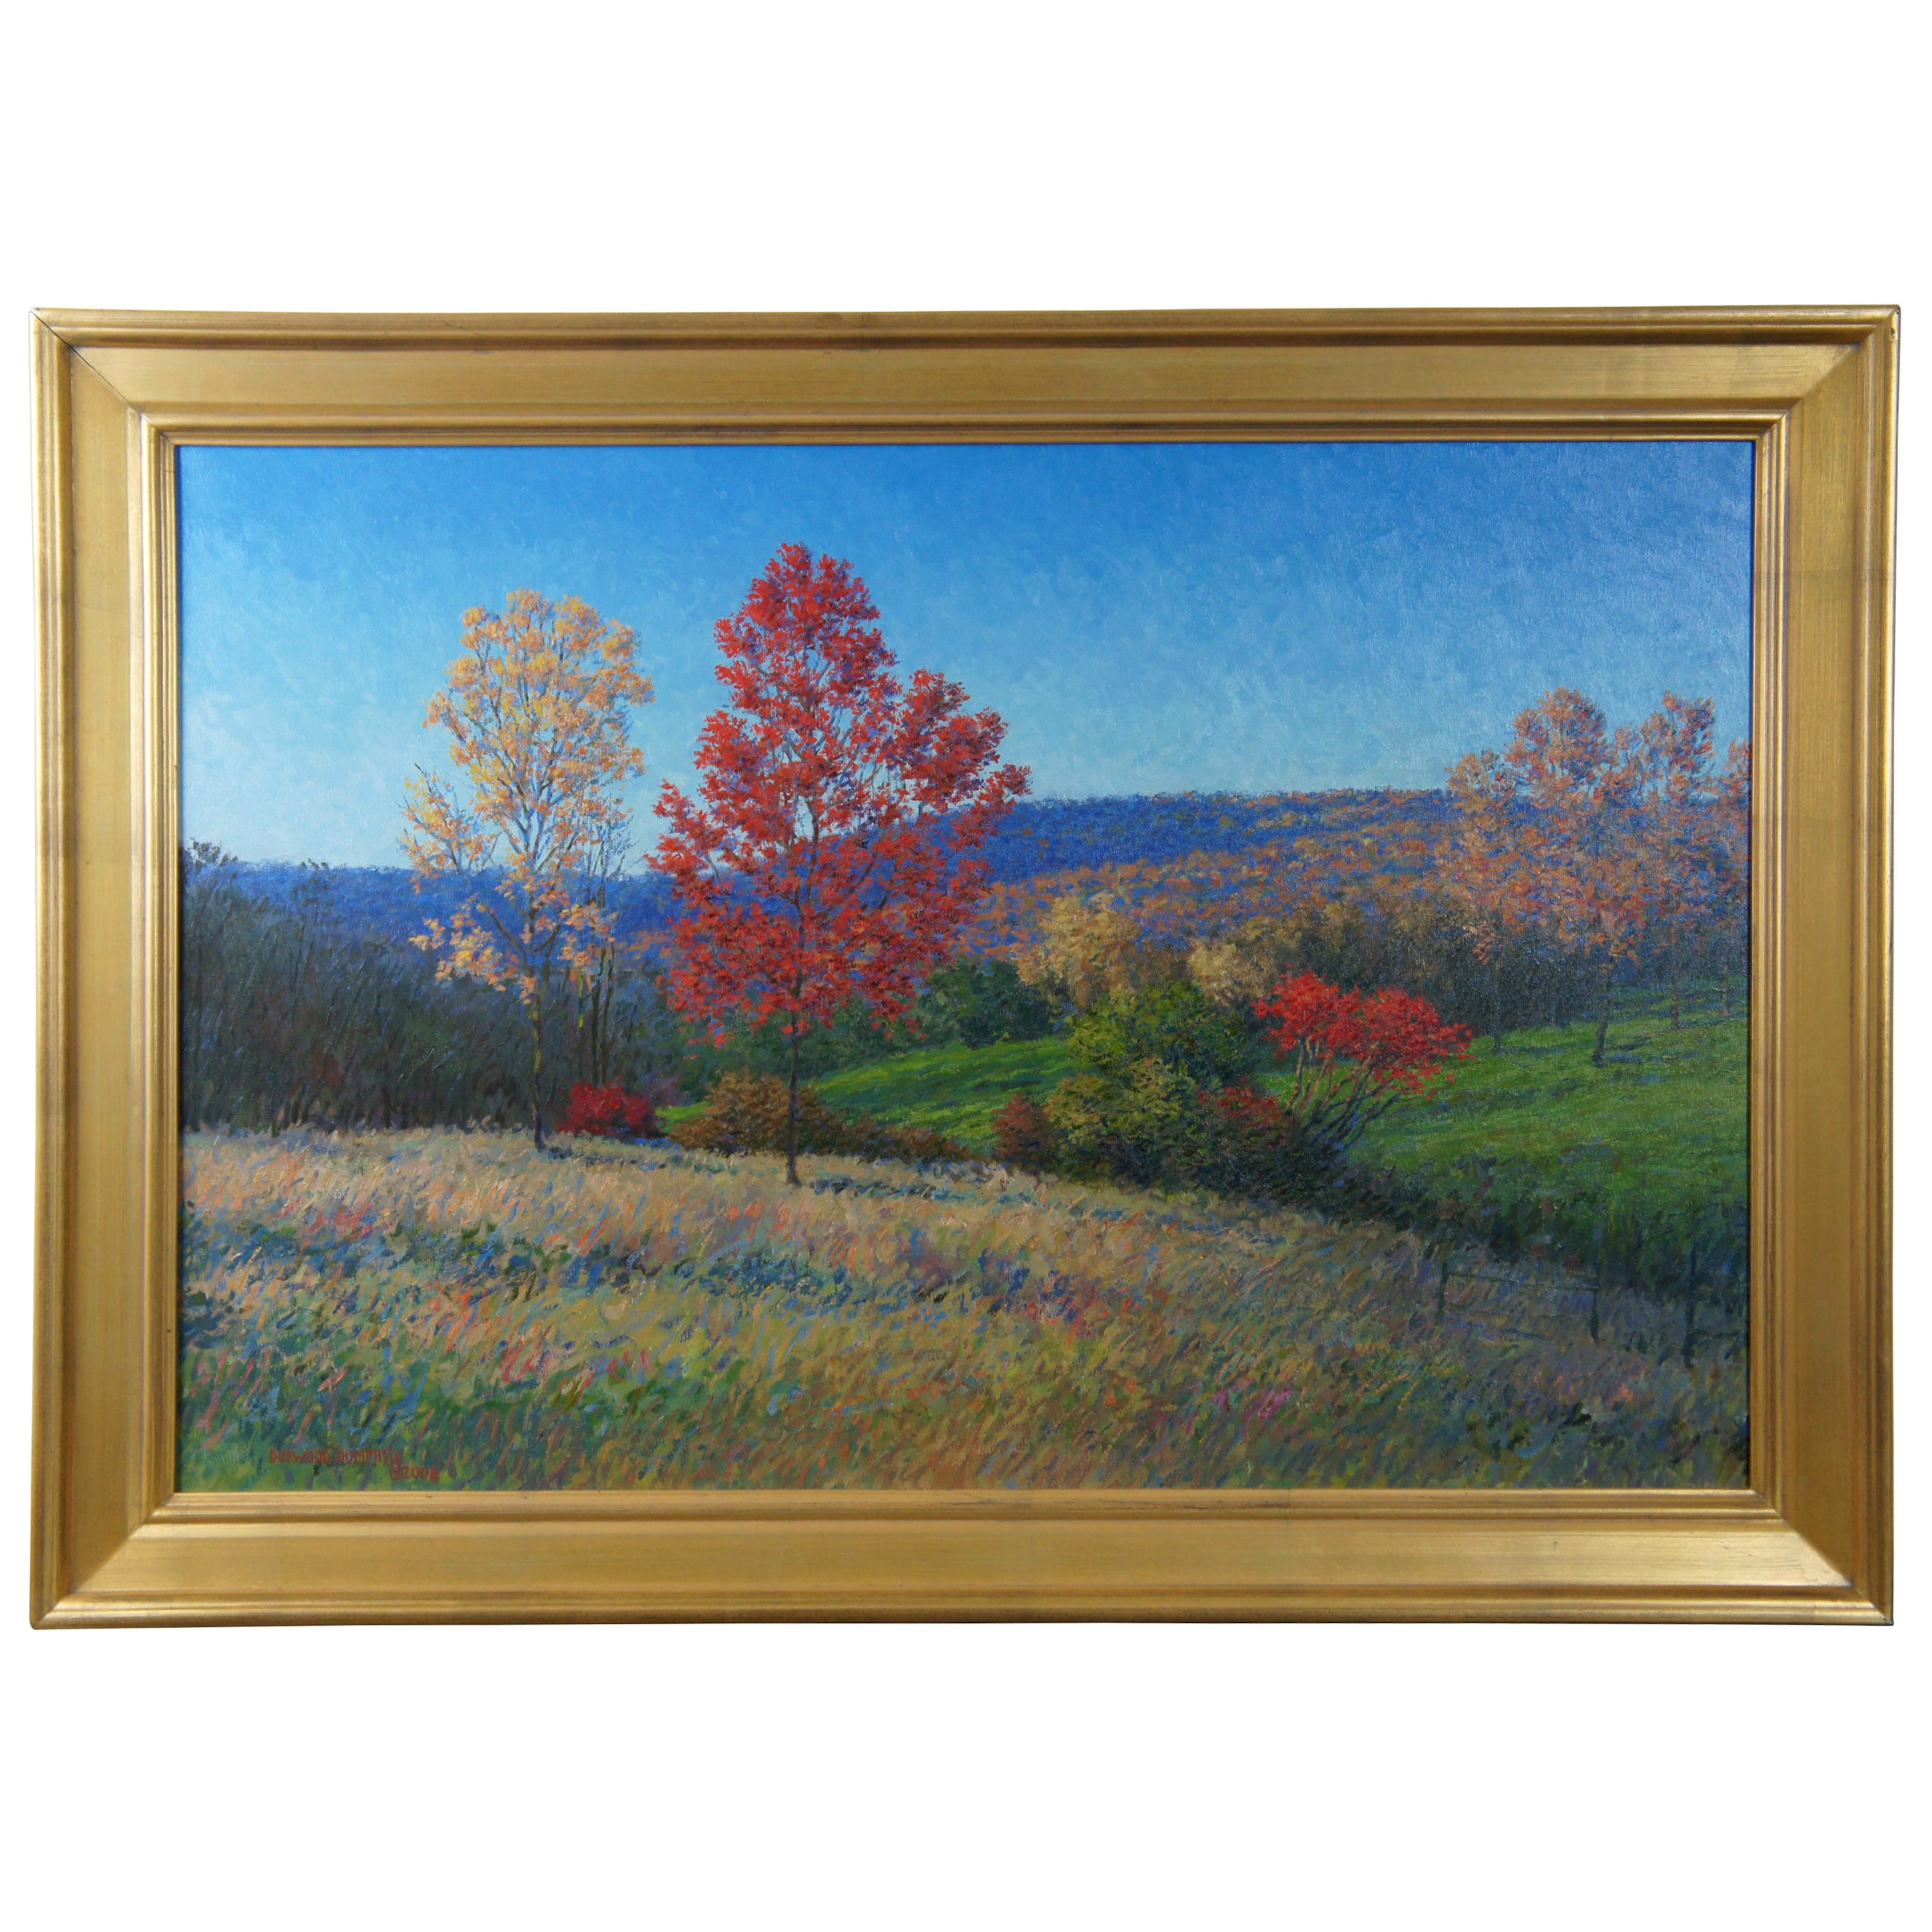 Nearing Bungletown Durwood Dommisse Landscape Oil on Canvas Painting